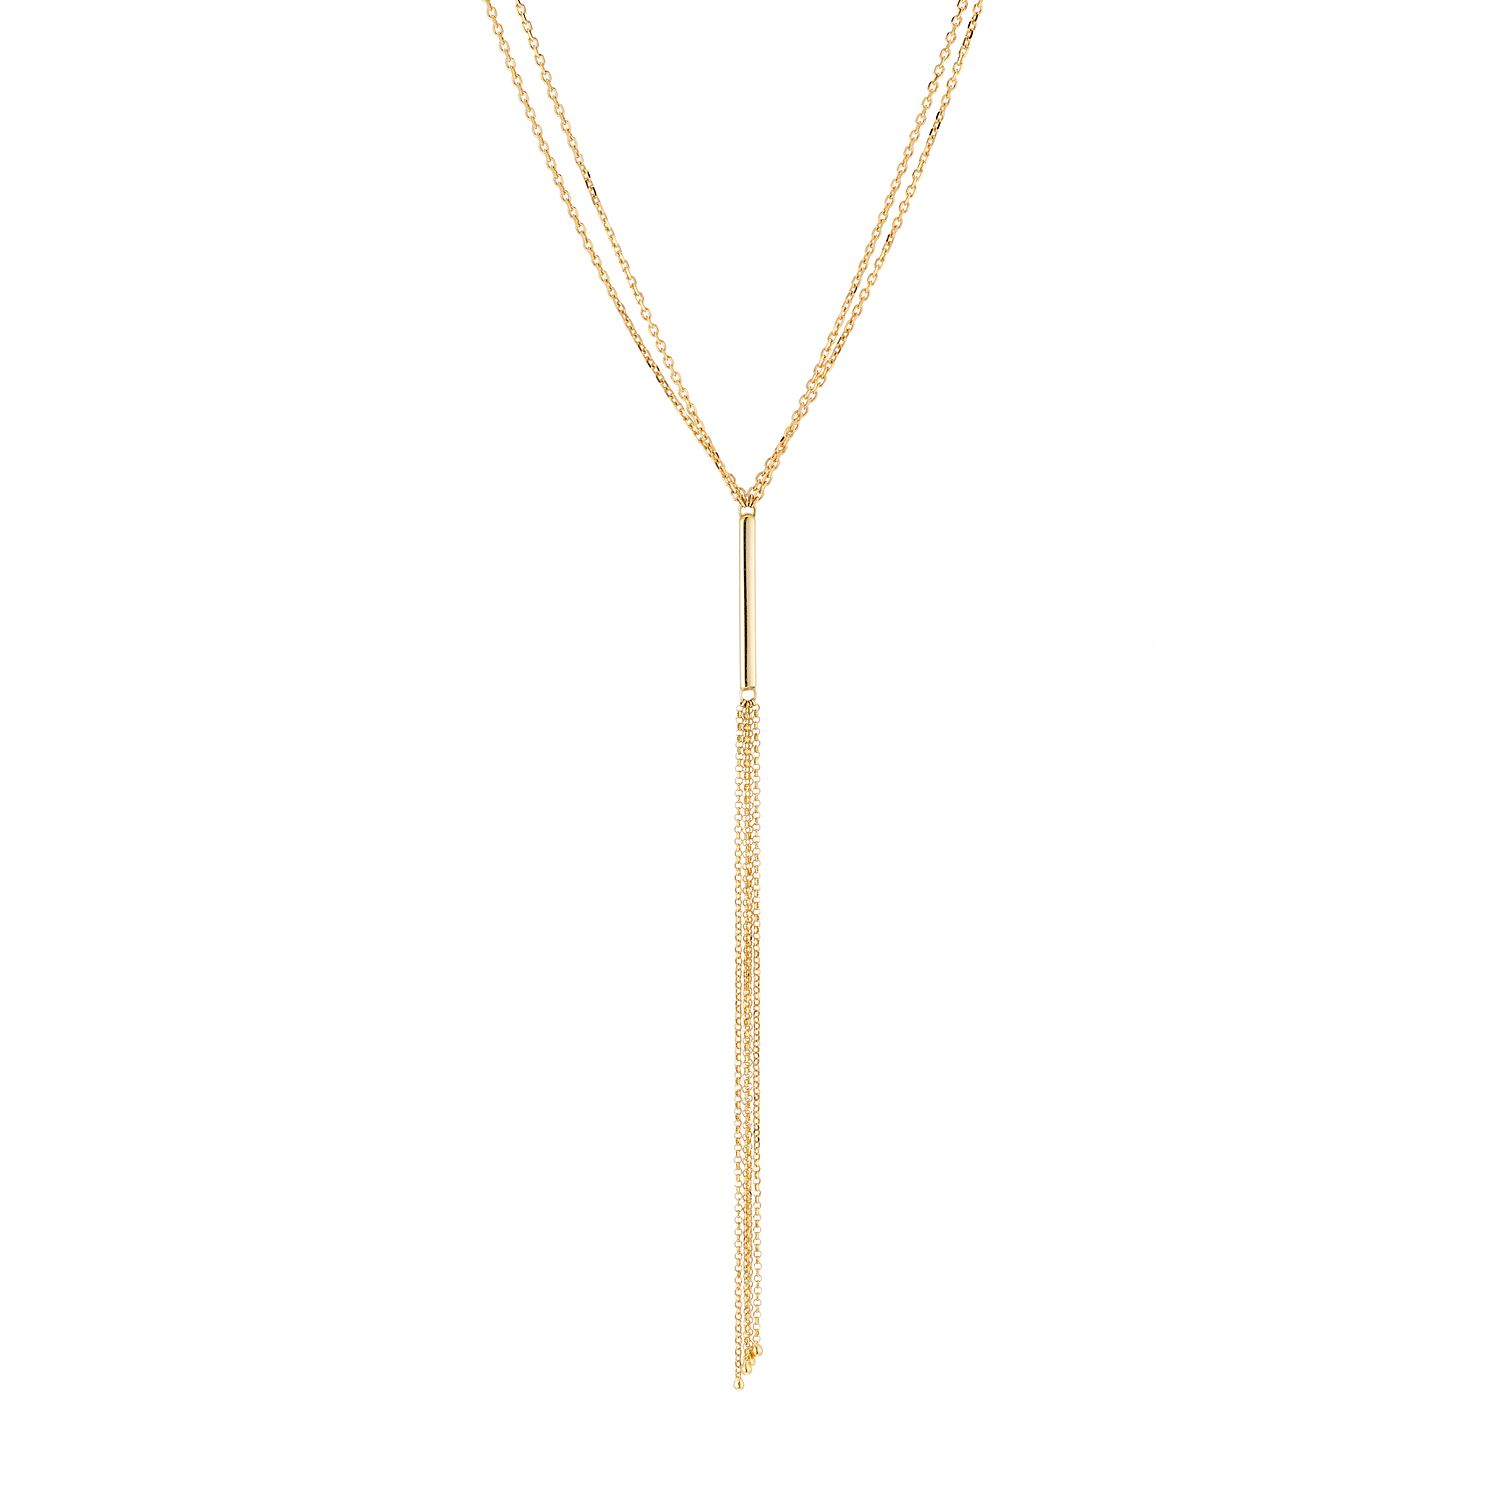 9ct Yellow Gold Bar Tassle Necklace - Product number 3142523